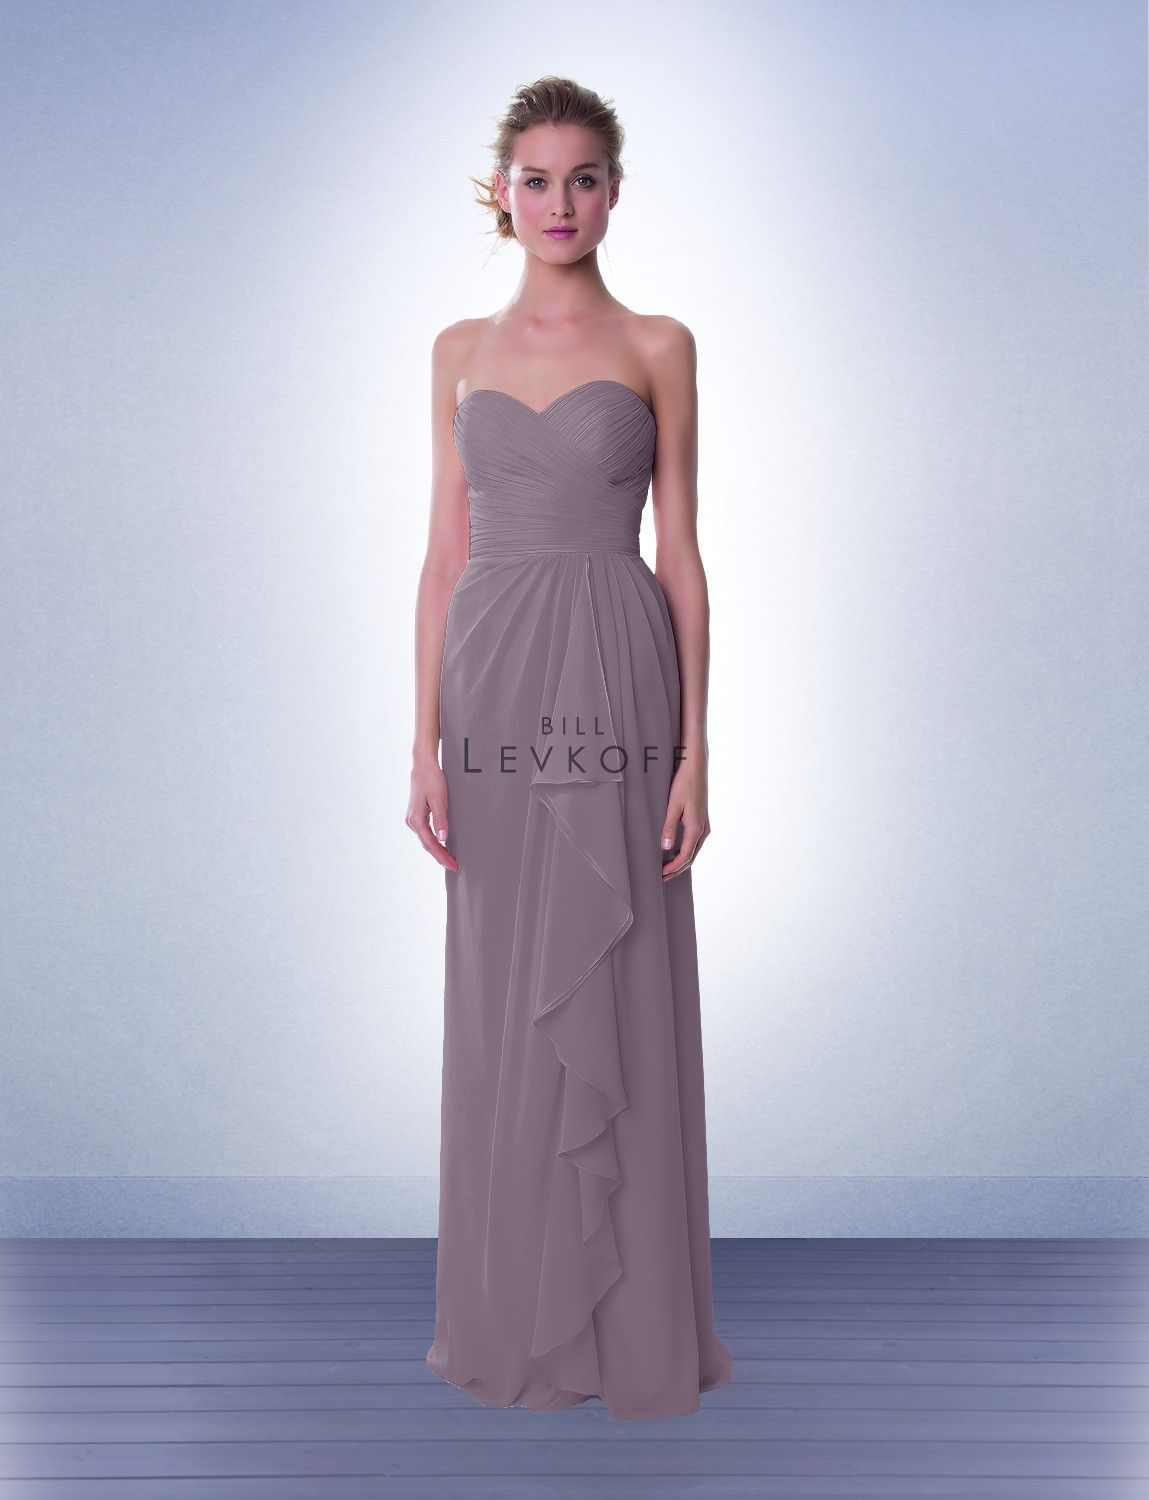 Bridesmaid Dress Style 987 - Bridesmaid Dresses by Bill Levkoff ...